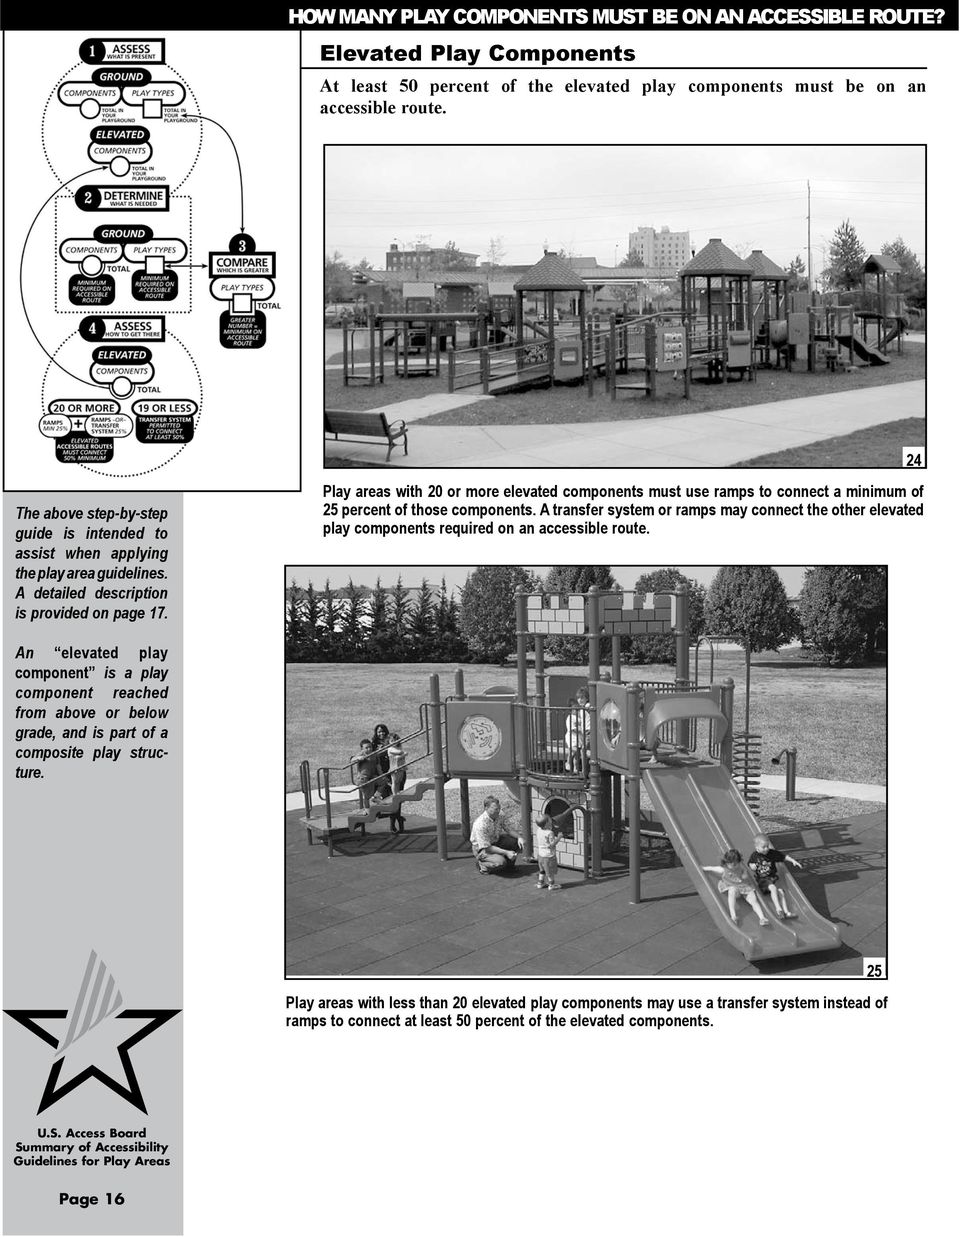 Play areas with 20 or more elevated components must use ramps to connect a minimum of 25 percent of those components.